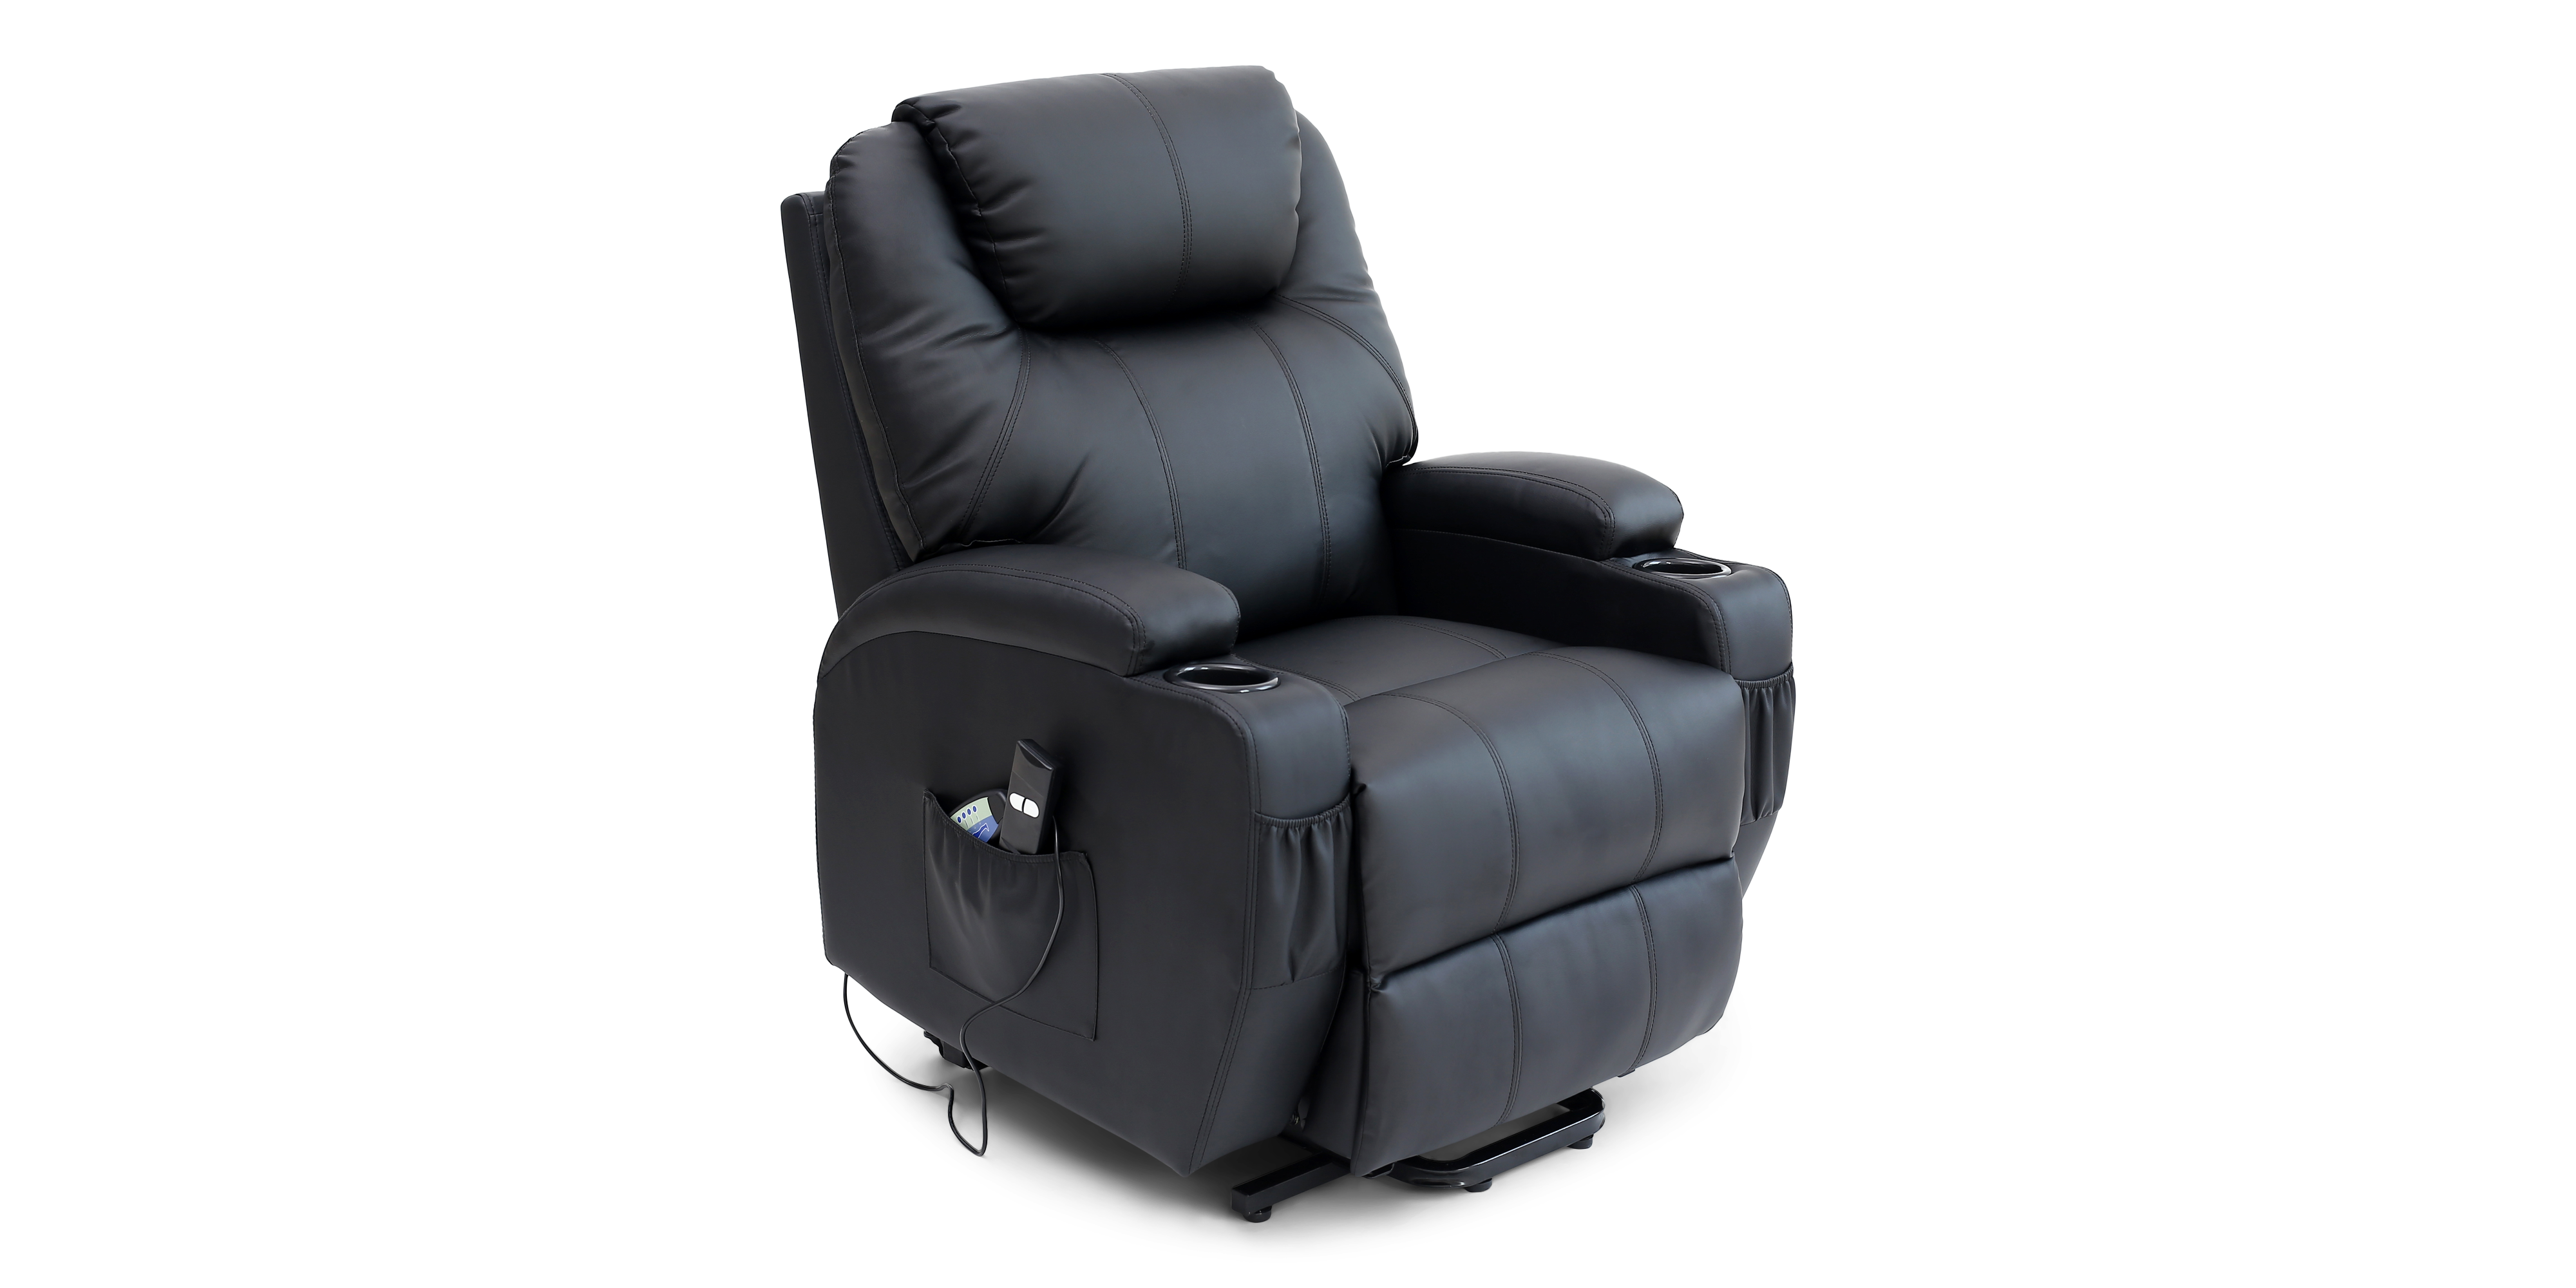 Cinemax Leather Rise Recliner Chair With Massage And Heat